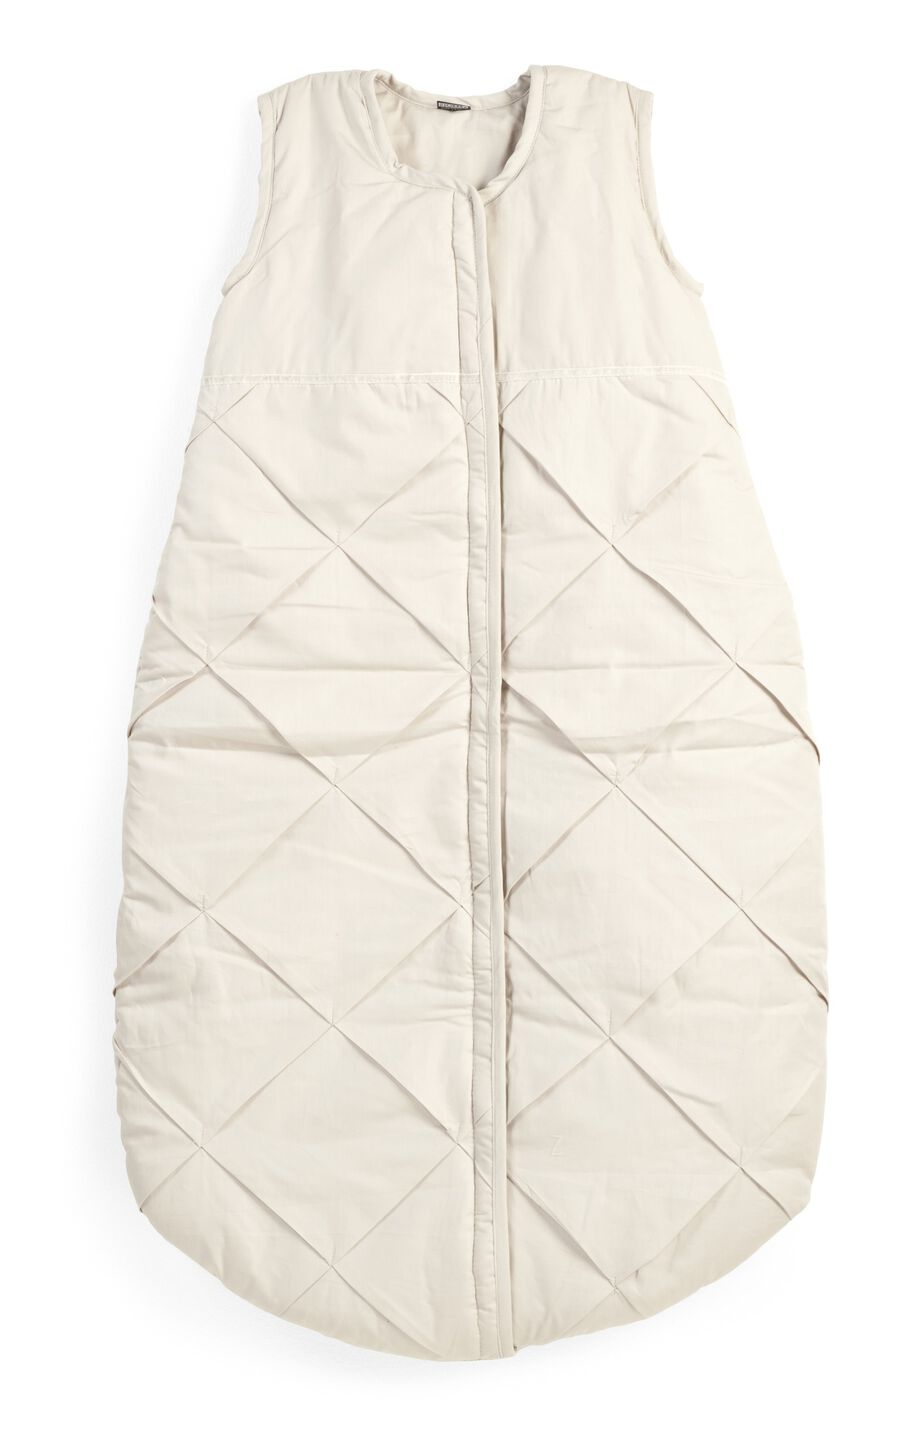 Sleeping Bag 90cm, Classic Beige